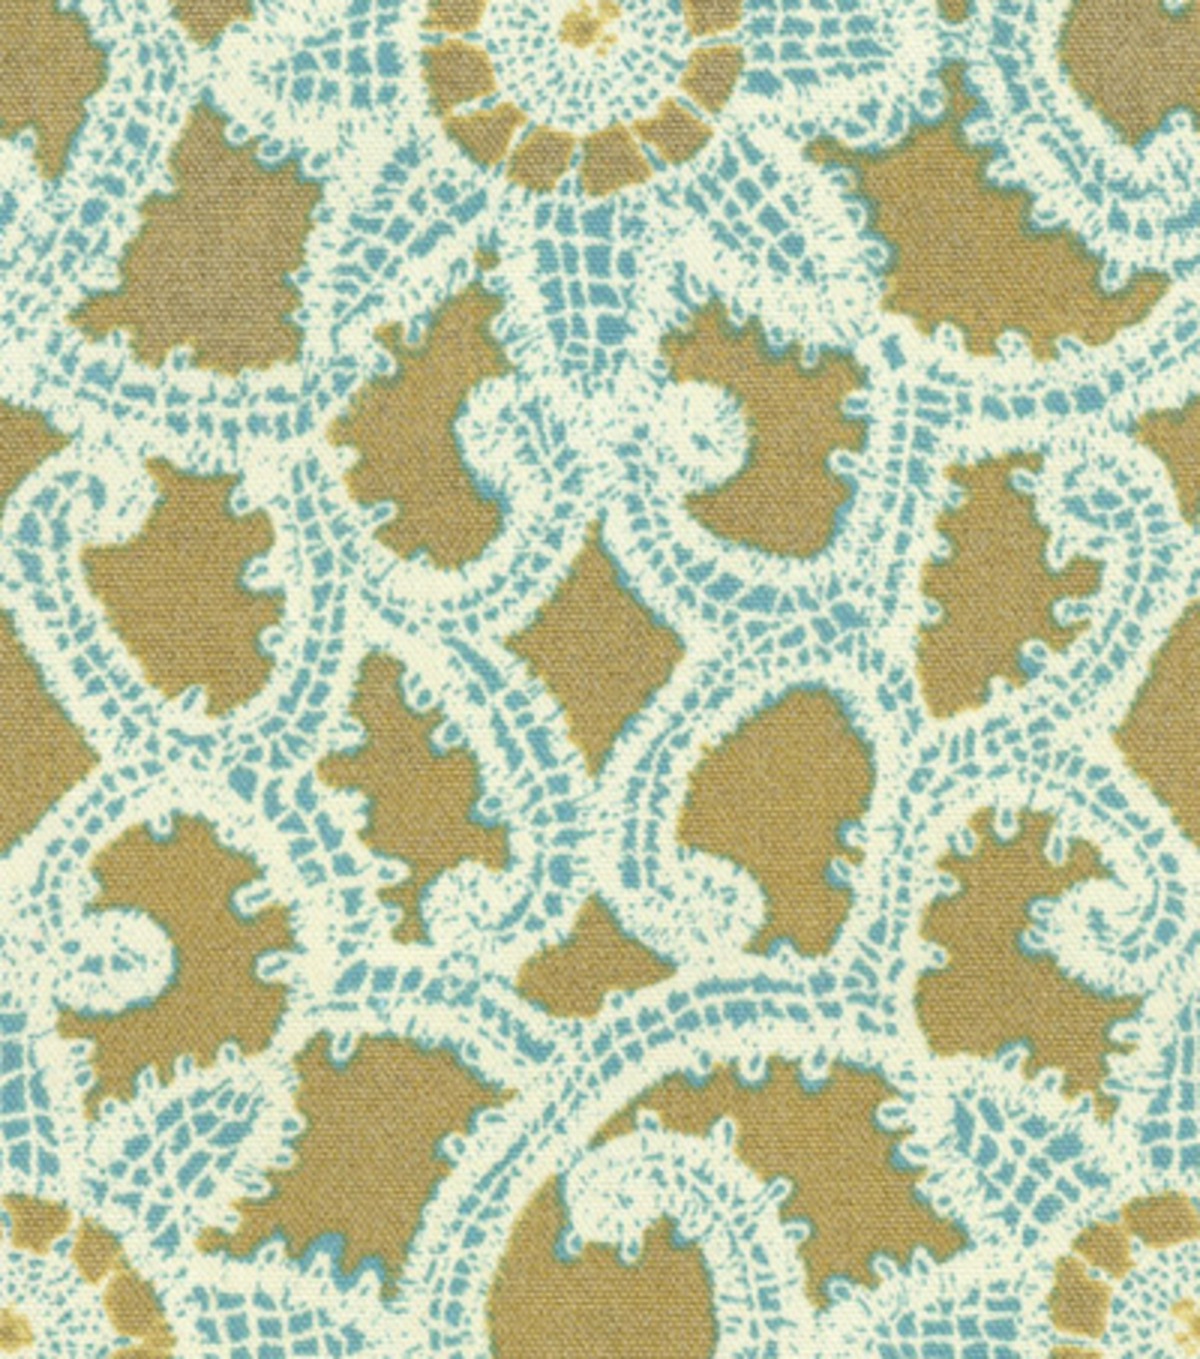 Home Decor 8\u0022x8\u0022 Fabric Swatch-HGTV HOME Like Lace Topaz